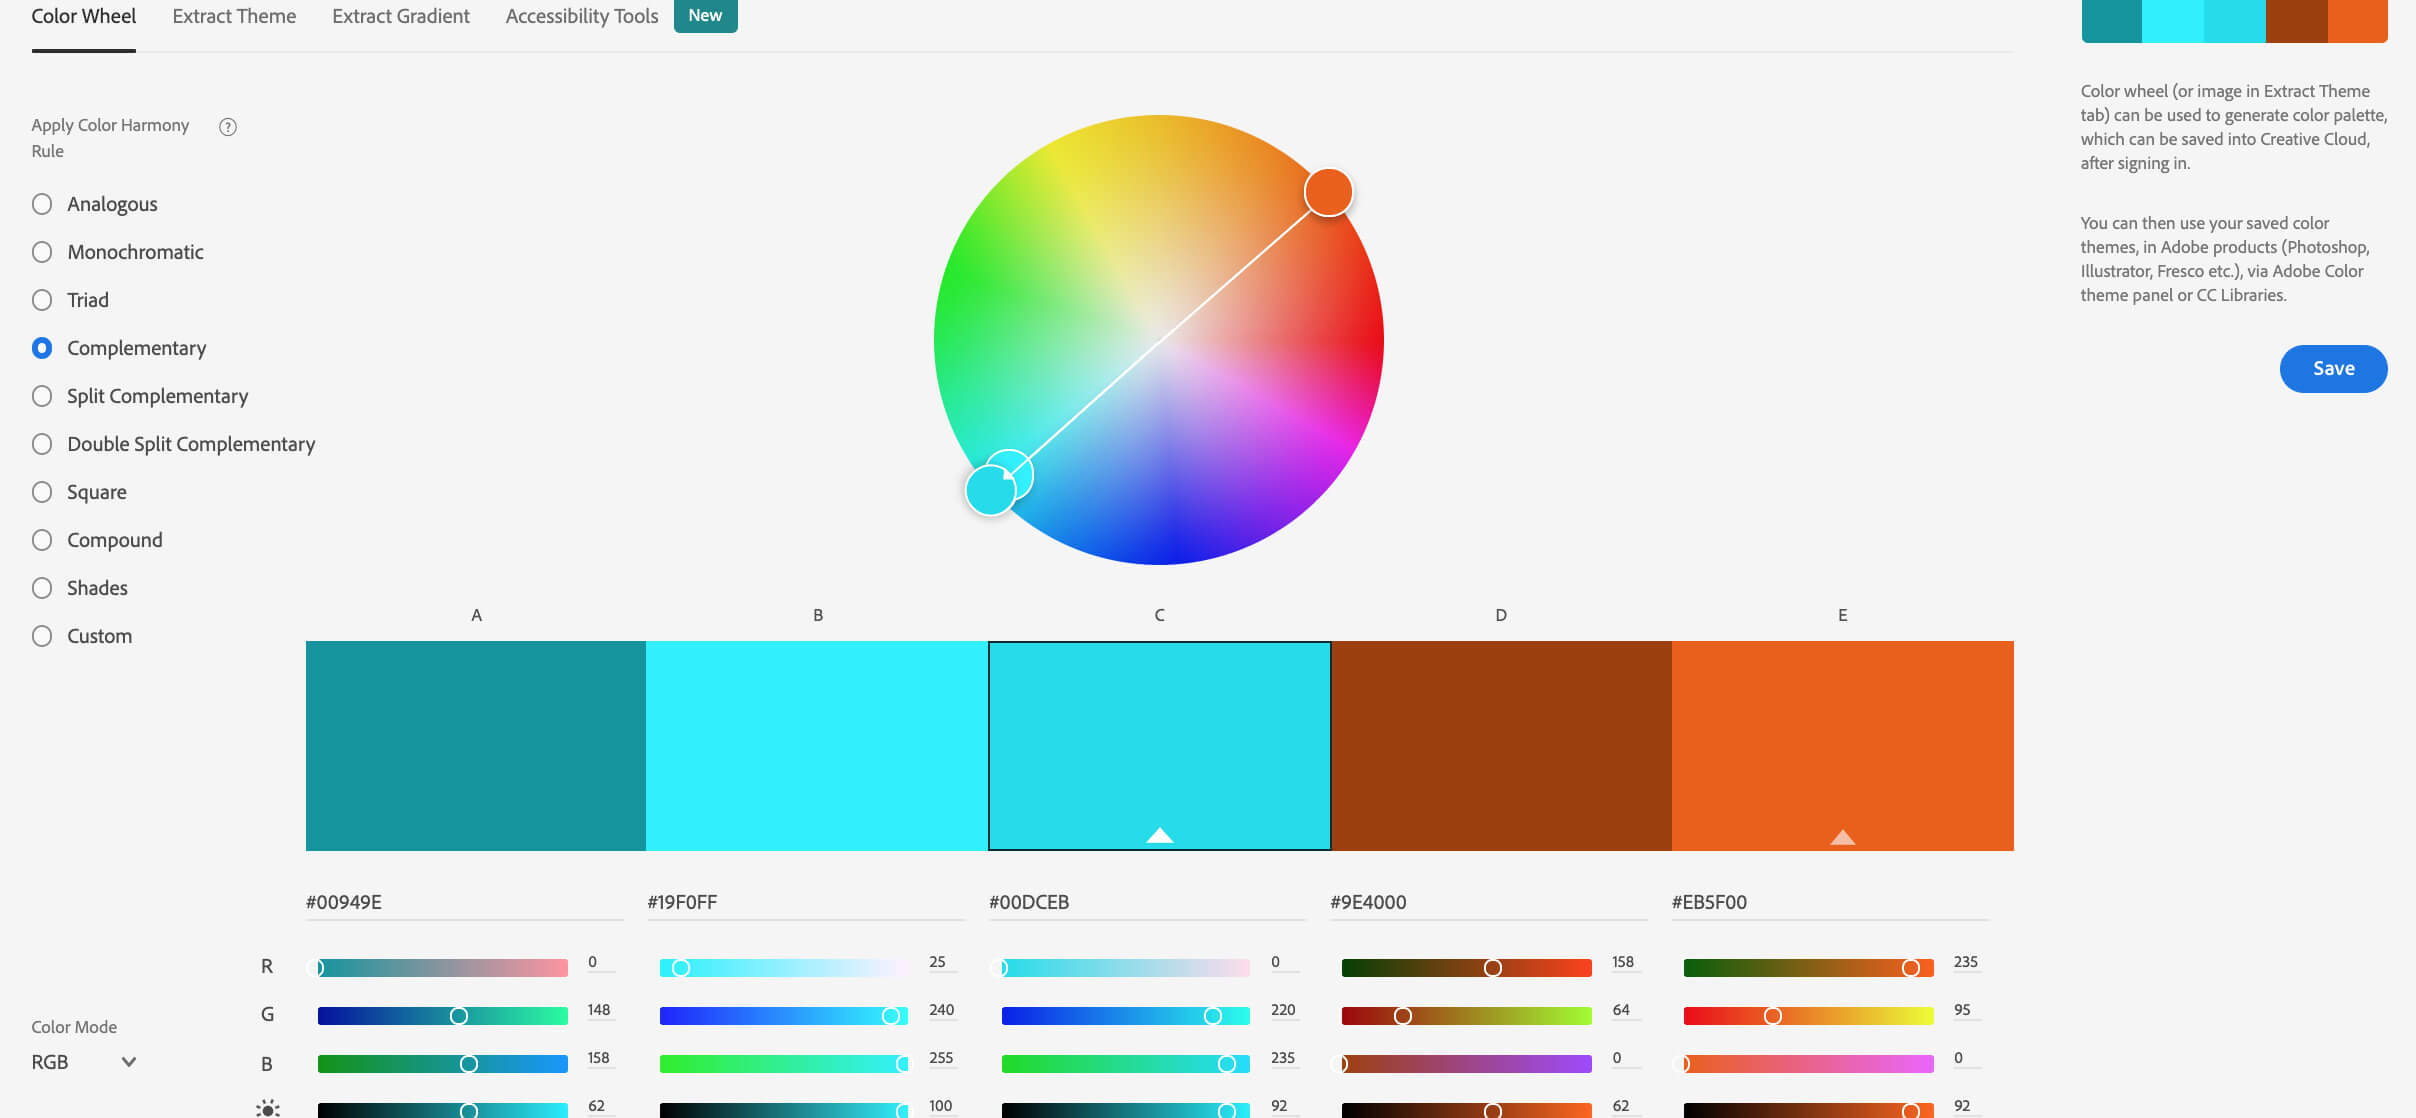 Color Wheel for aesthetically pleasing pictures